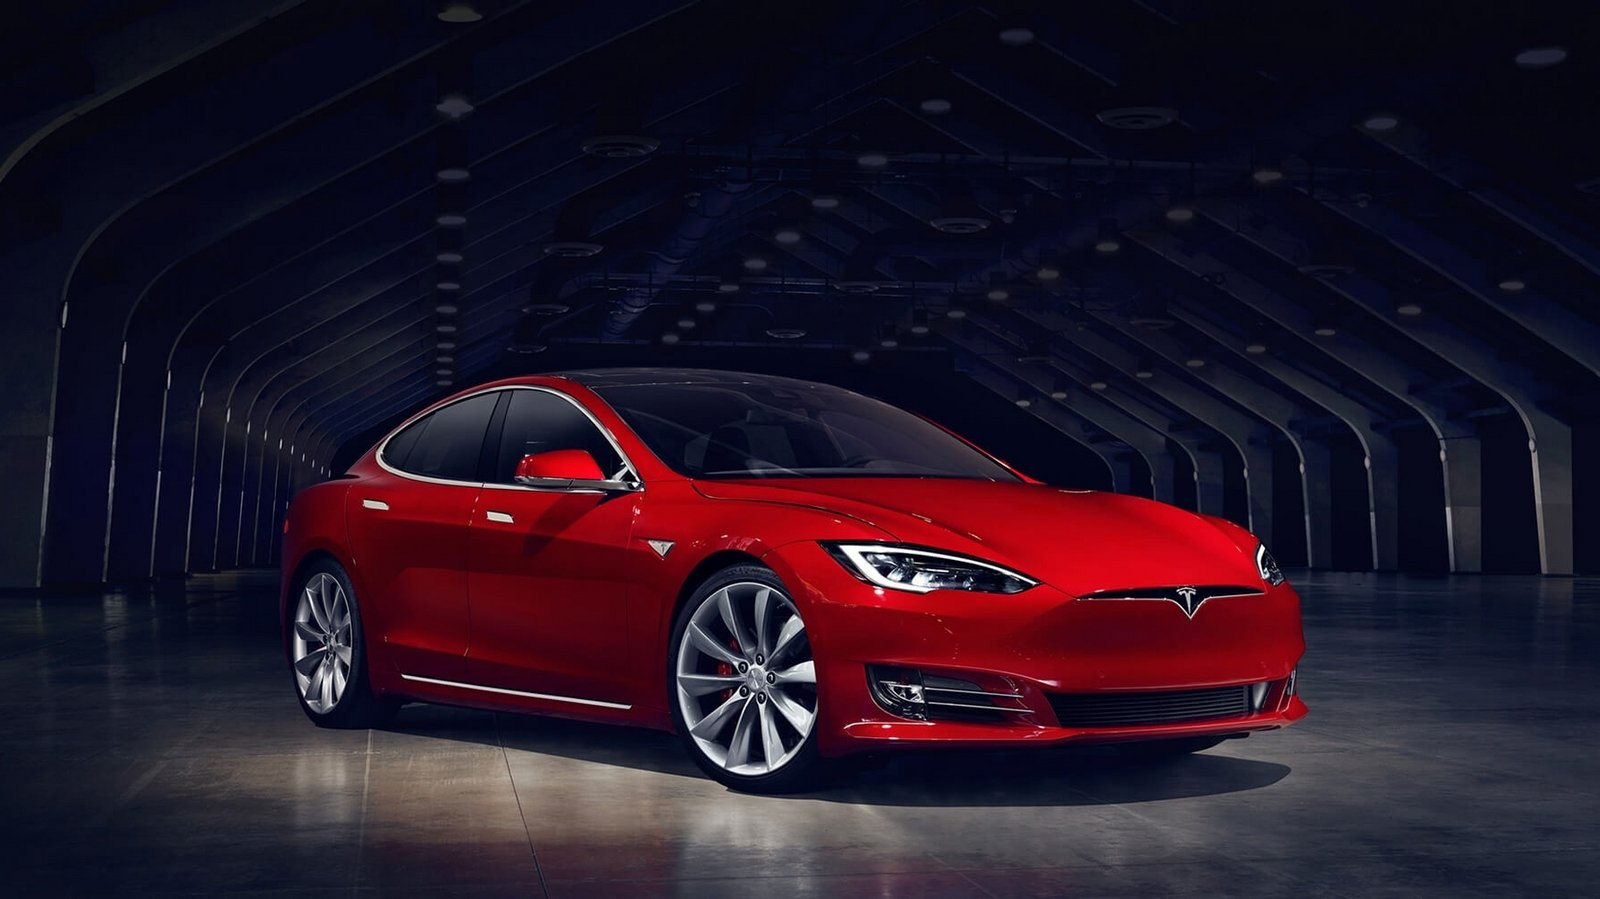 2017 tesla model s picture 672486 car review top speed. Black Bedroom Furniture Sets. Home Design Ideas